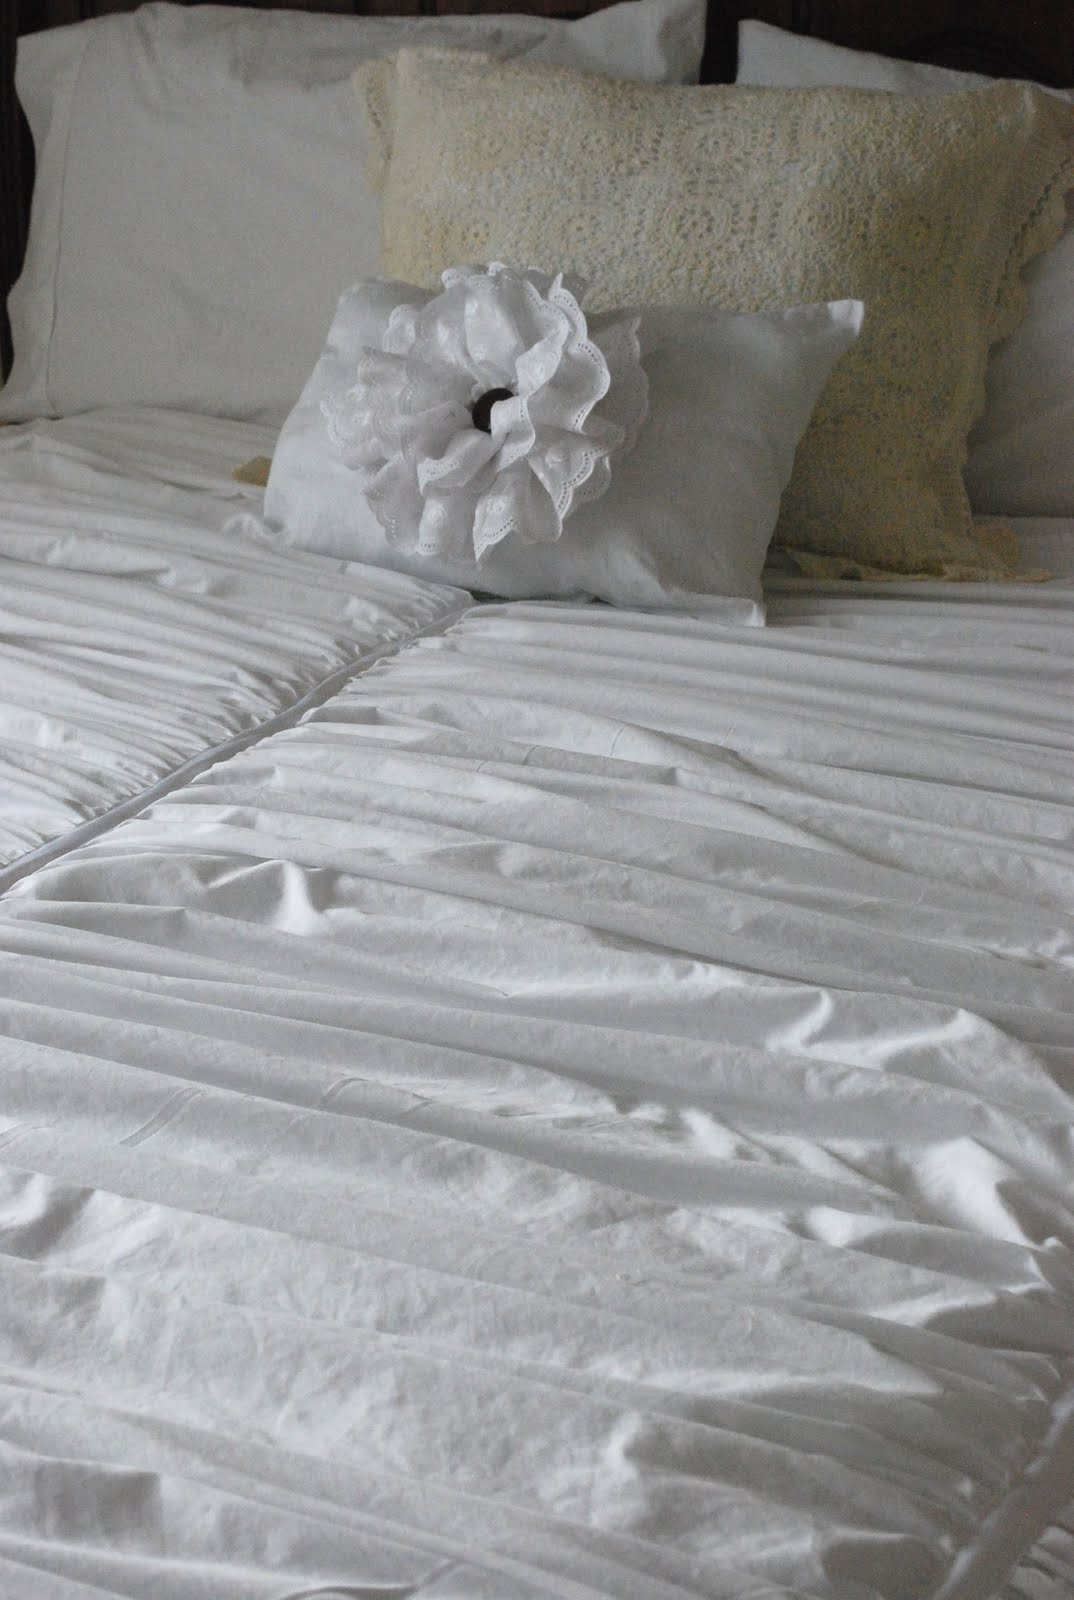 Fussy Monkey Business Pottery Barn S Hadley Ruched Duvet